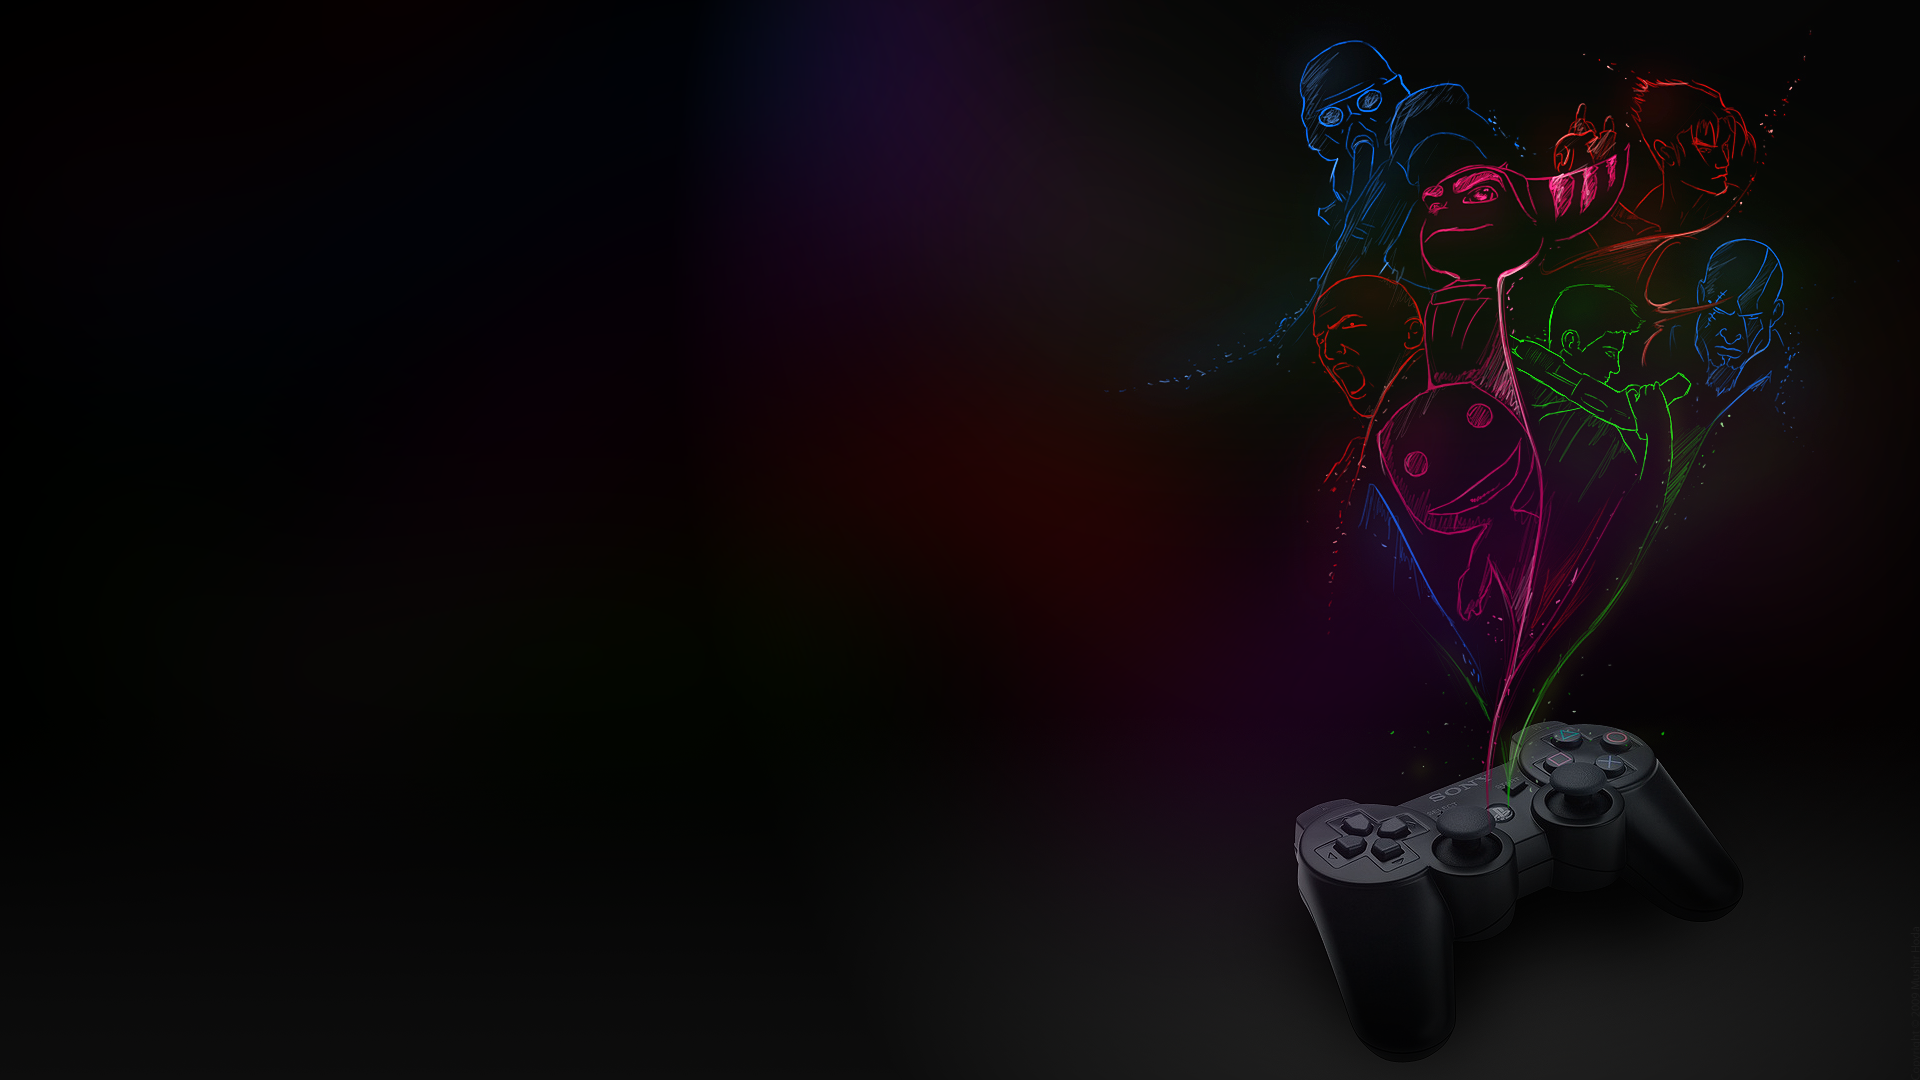 Decided I'd make it into a wallpaper I could use on my PS3. Thought it looked pretty good so I decided to share it!